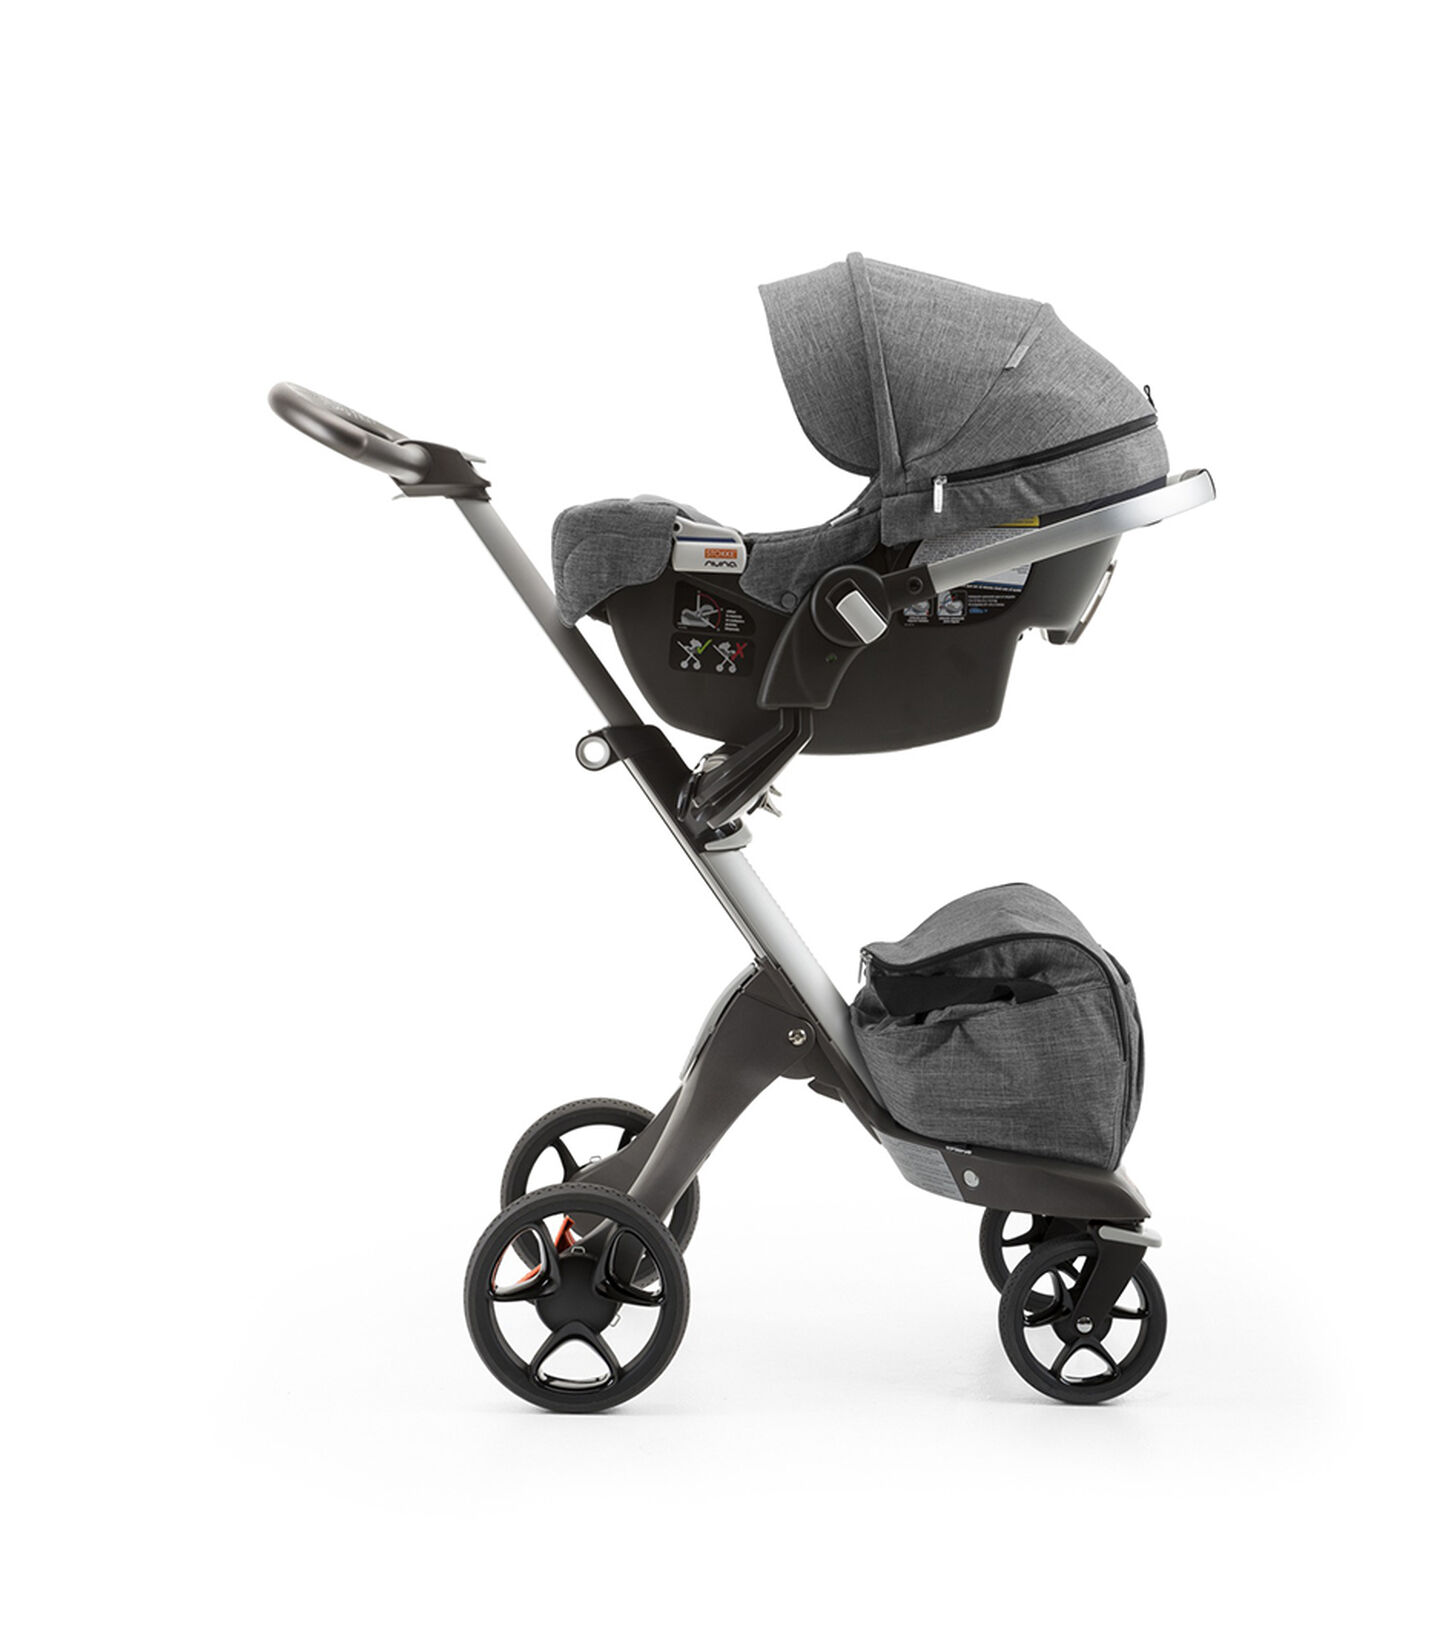 StokkeR PIPATM By NunaR Car Seat Black Melange Mounted On